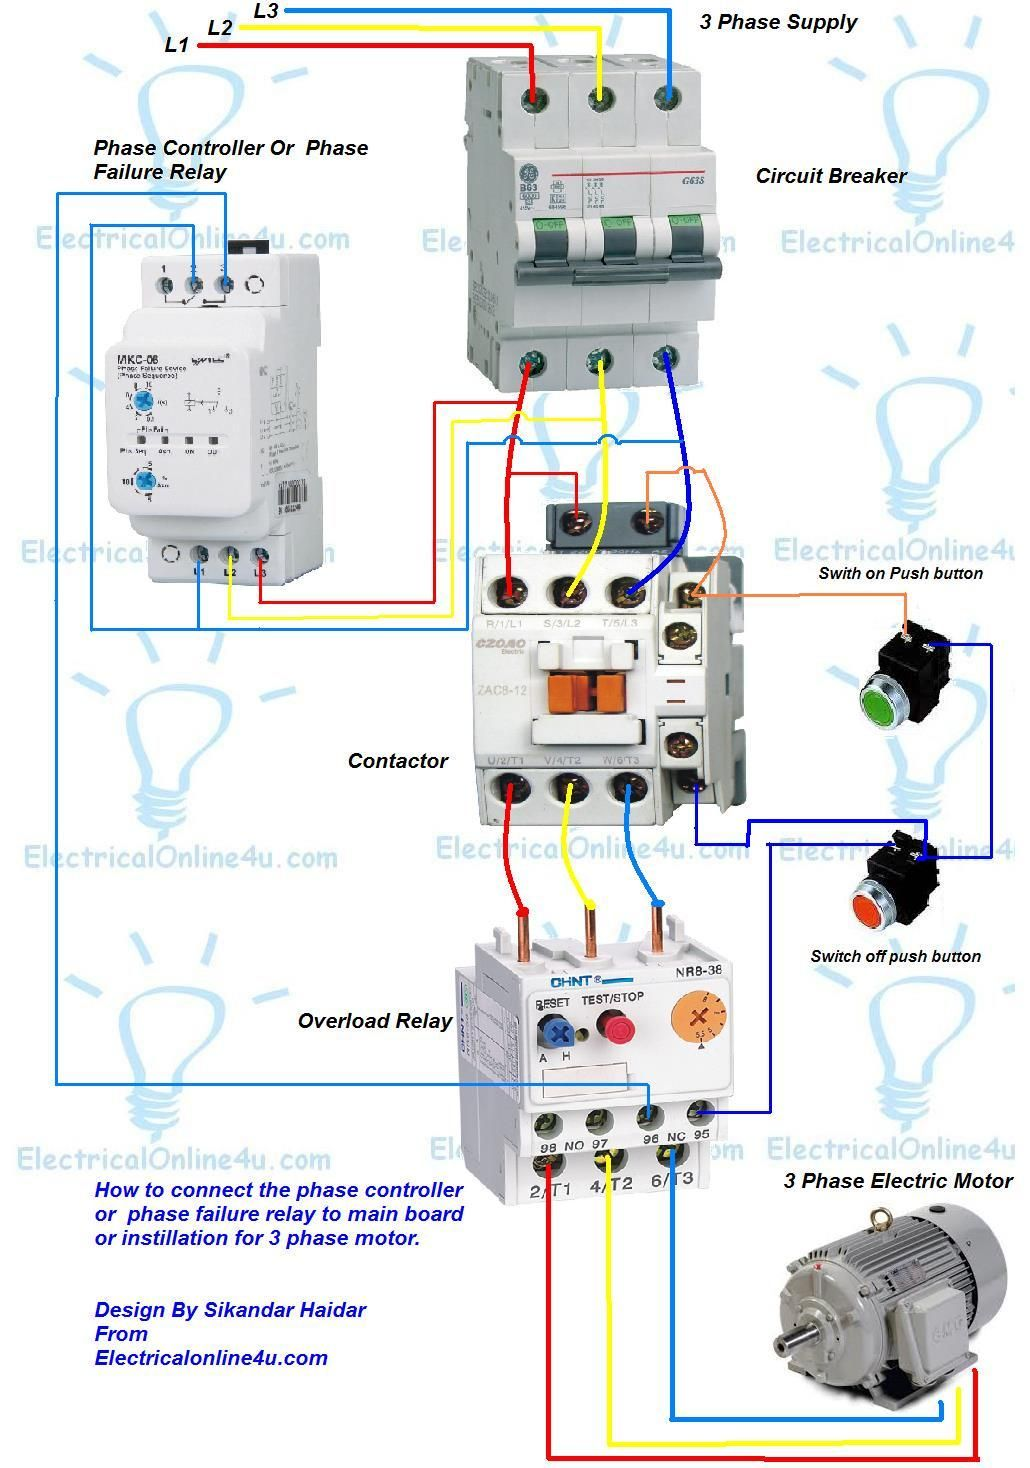 phase controller wiring phase failure relay diagram [ 1030 x 1468 Pixel ]